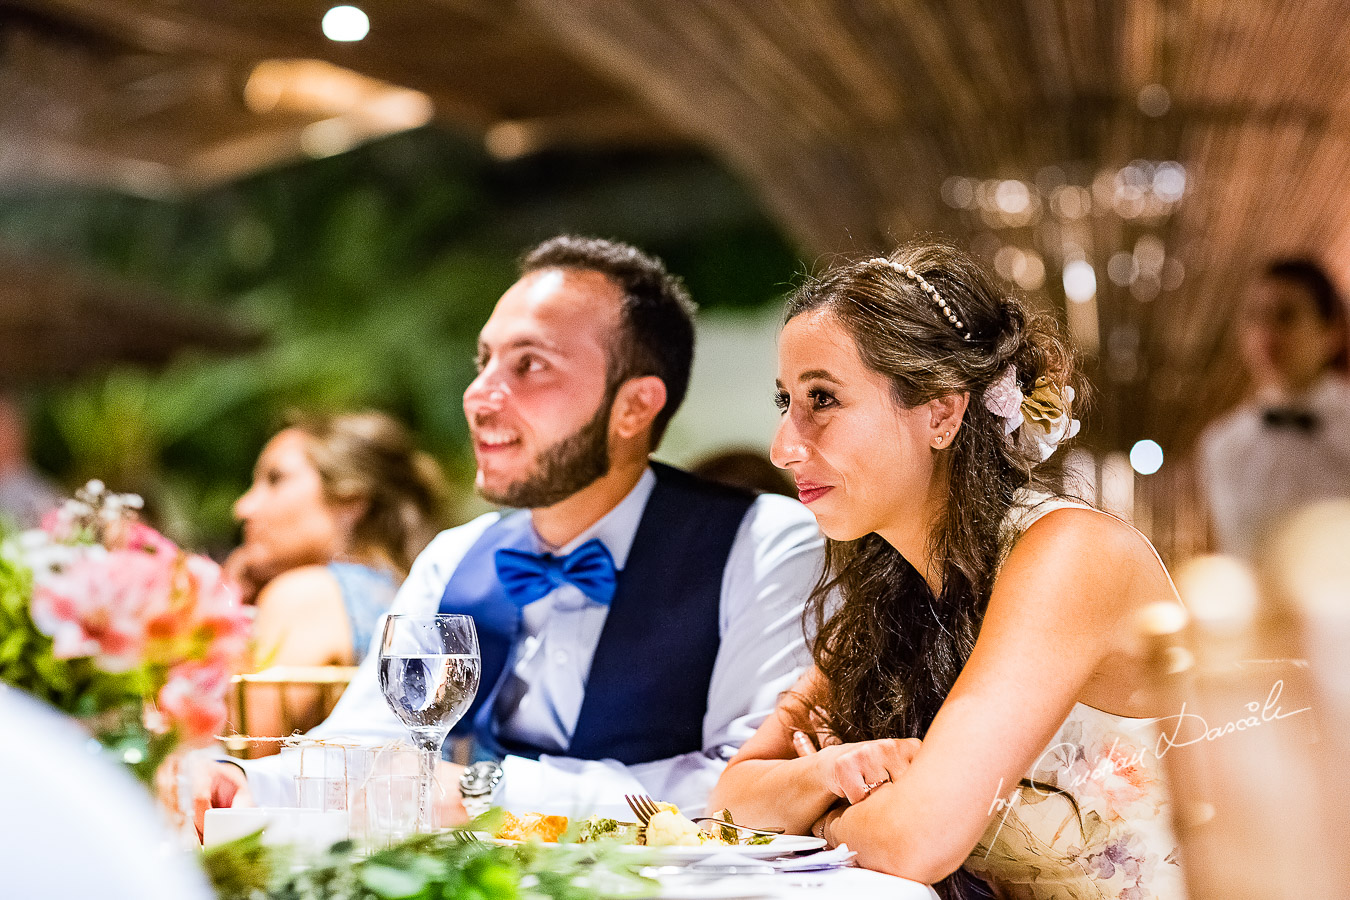 Emotional moments during speeches photographed as part of an Exclusive Wedding photography at Grand Resort Limassol, captured by Cyprus Wedding Photographer Cristian Dascalu.